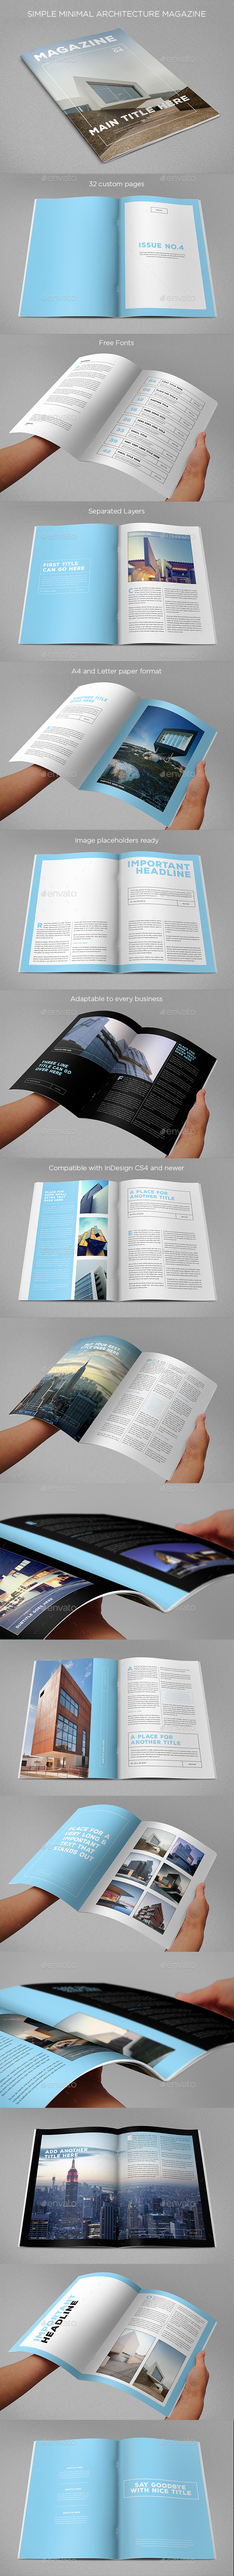 Simple Minimal Architecture Magazine - Magazines Print Templates